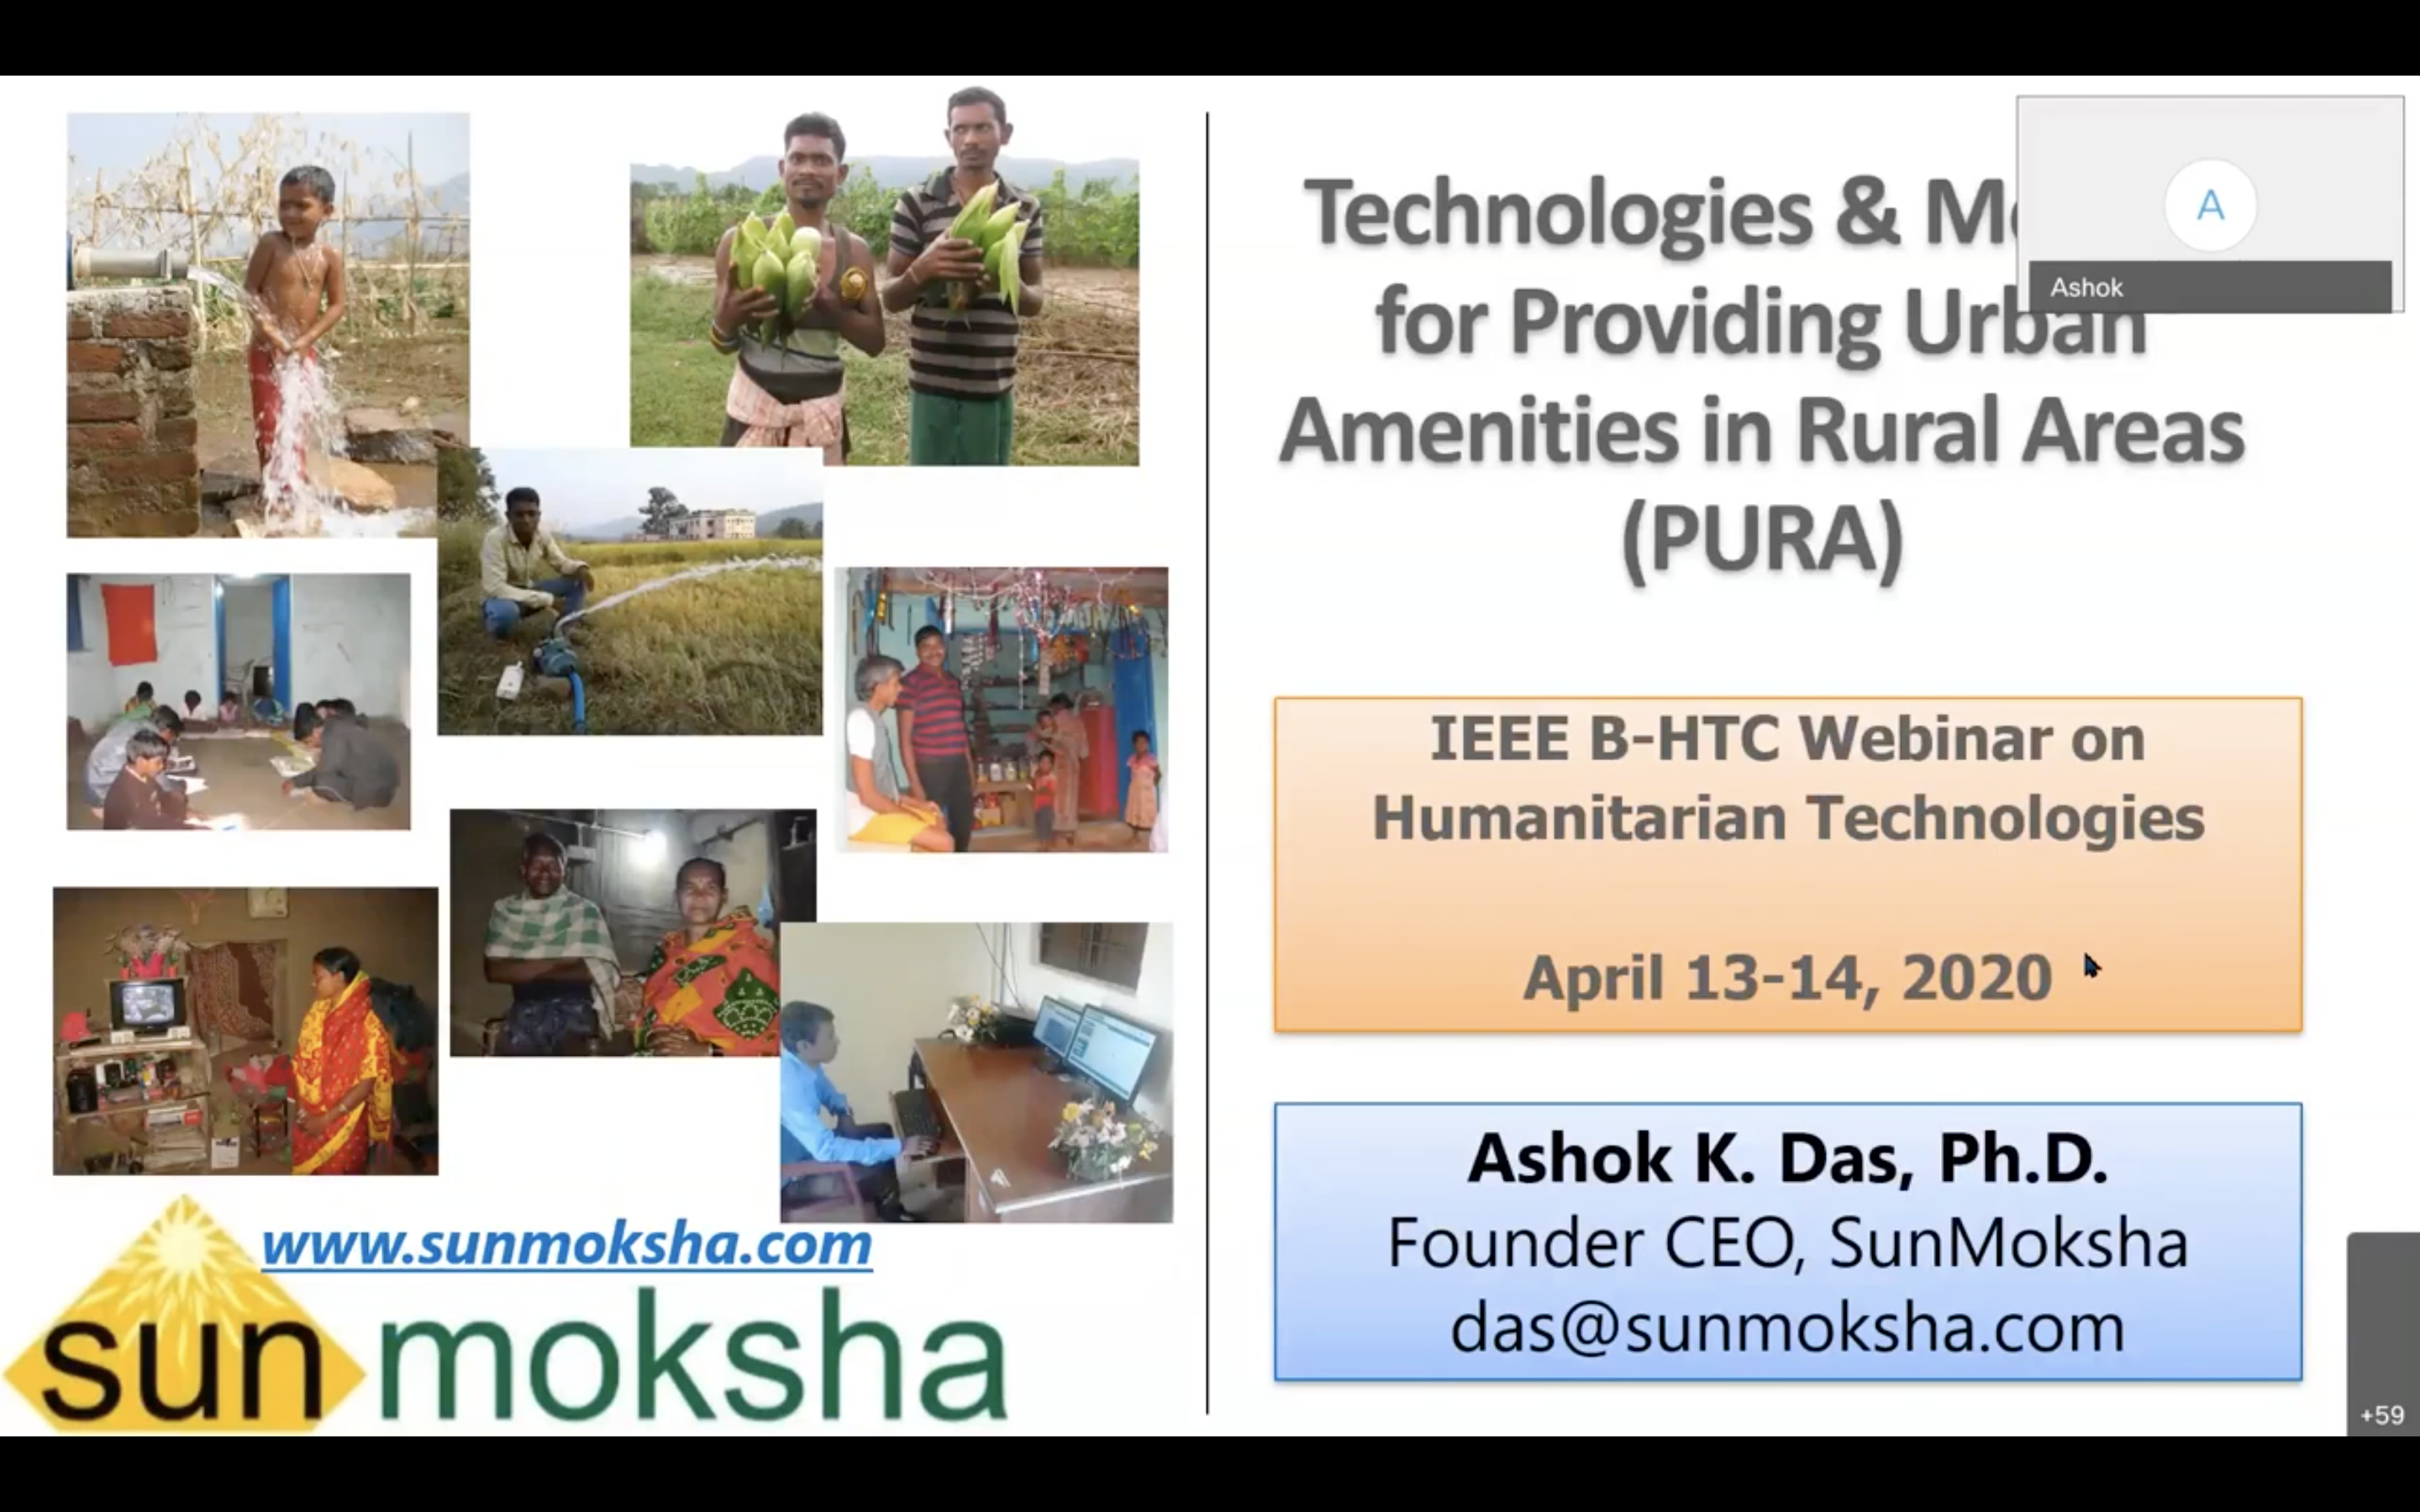 Technologies & Models for Providing Urban Amenities in Rural Areas